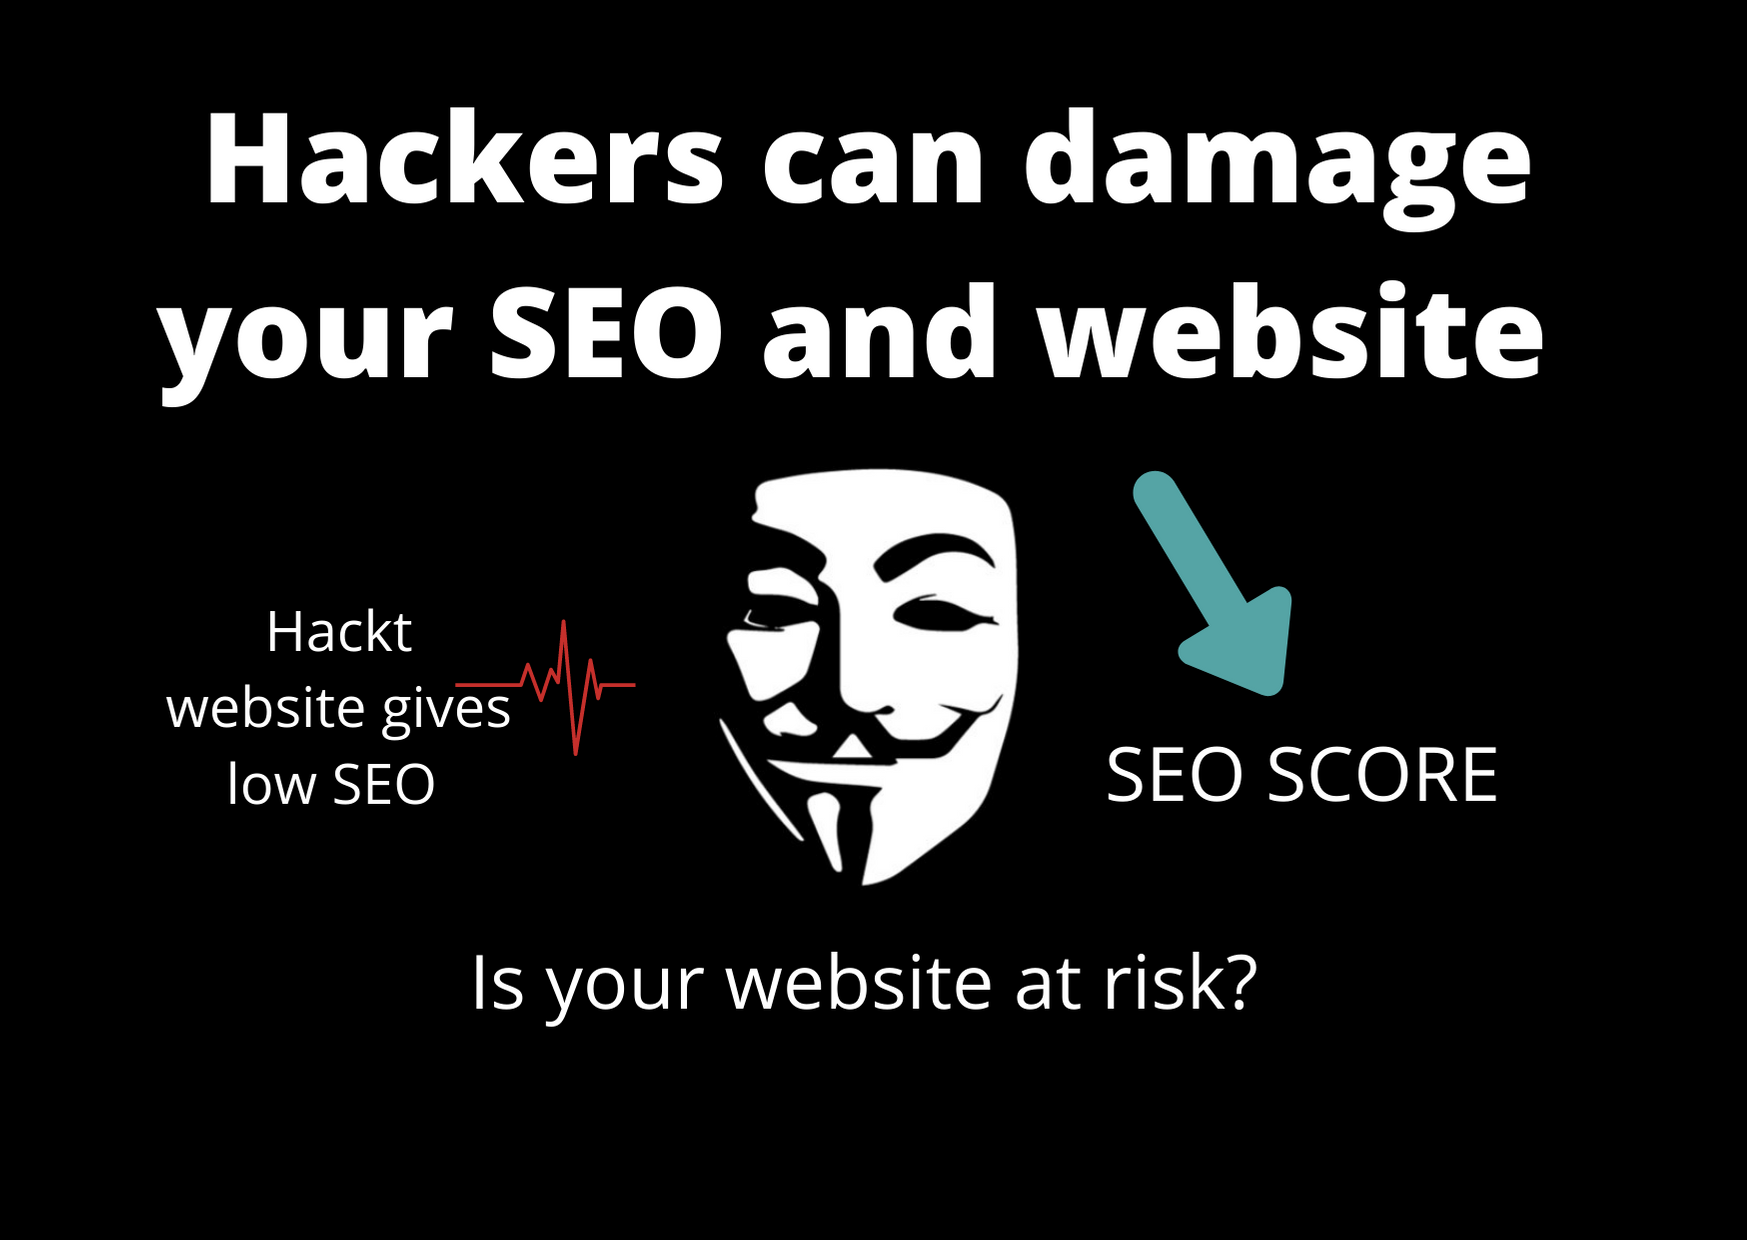 Website security check - Is it possible to easly hack your website and damage it and kill your seo